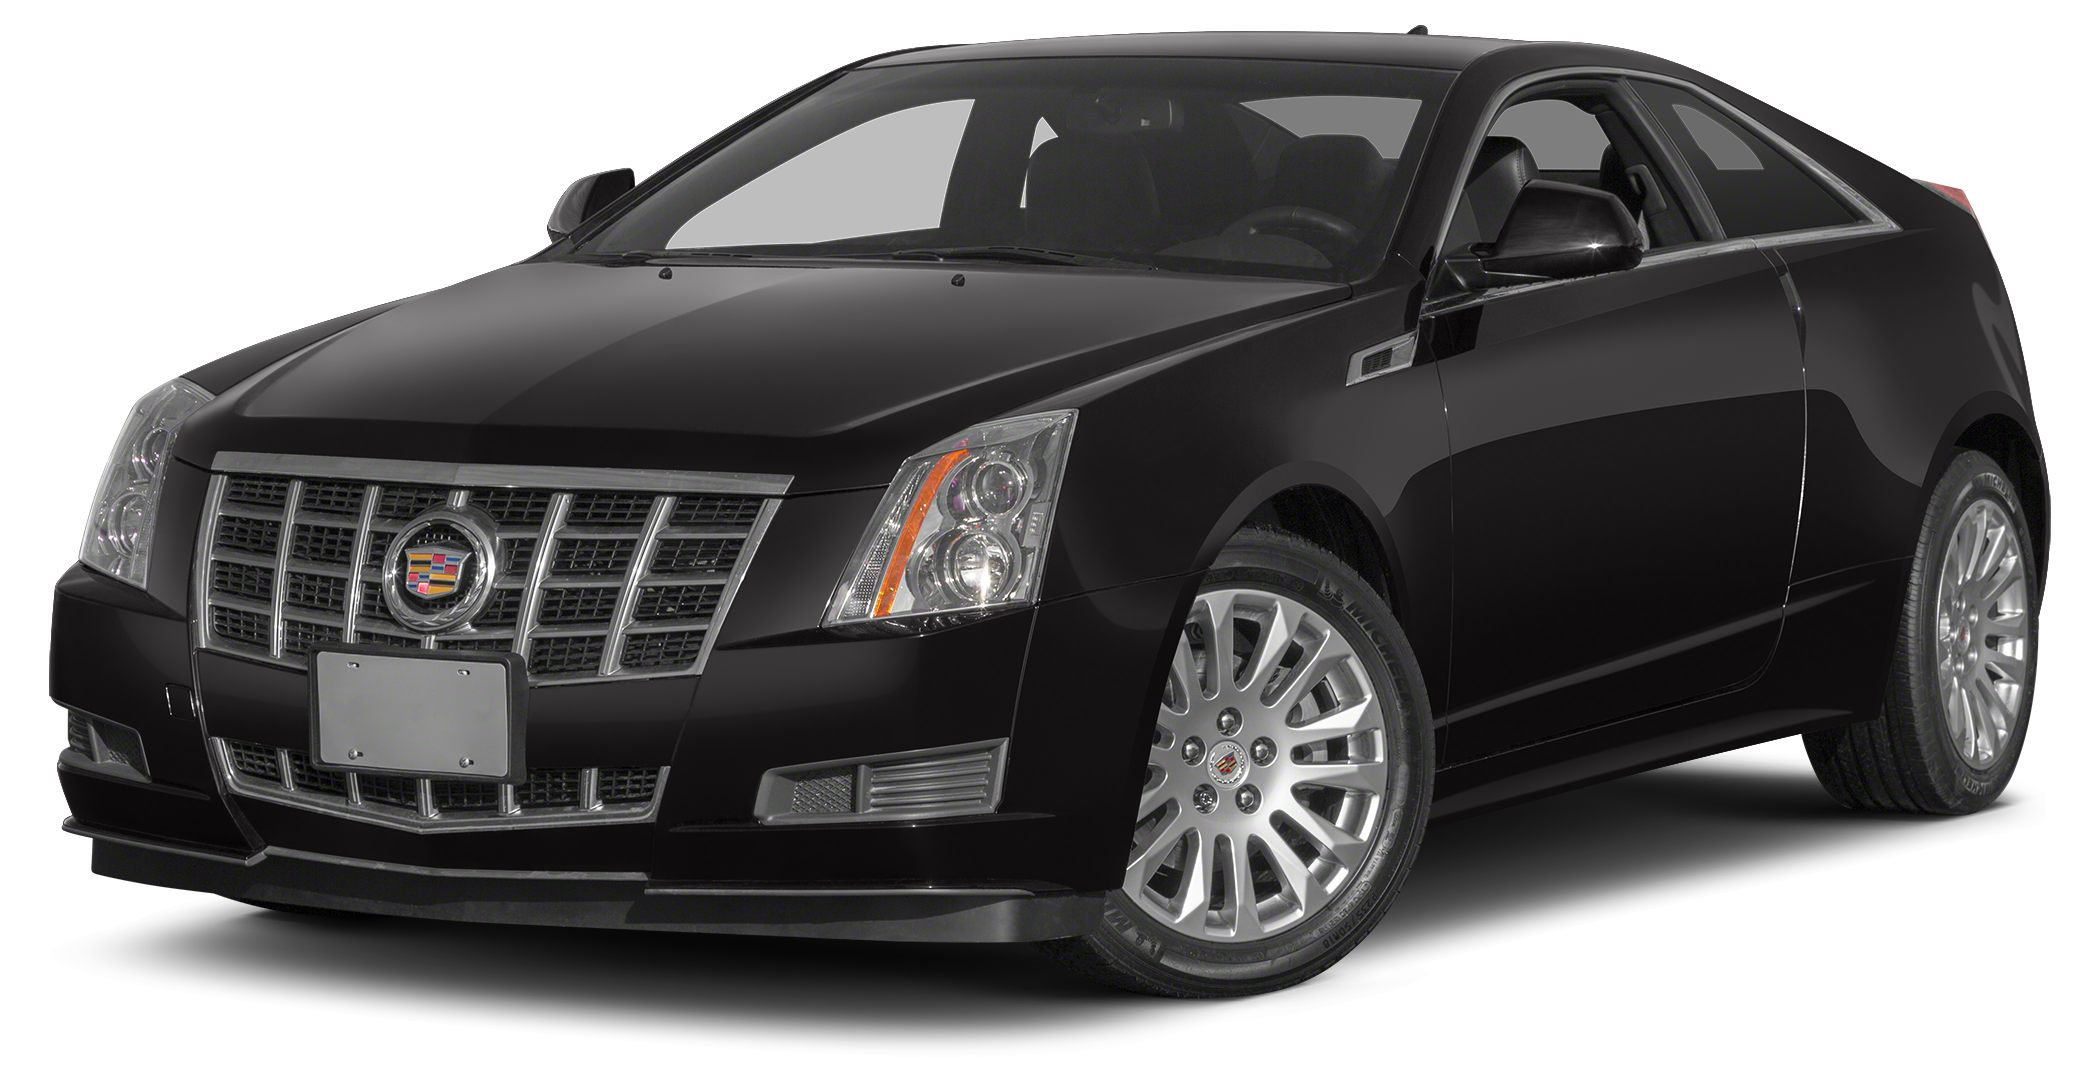 2014 Cadillac CTS Performance In a class by itself Daytona Hyundai has outdone itself with this